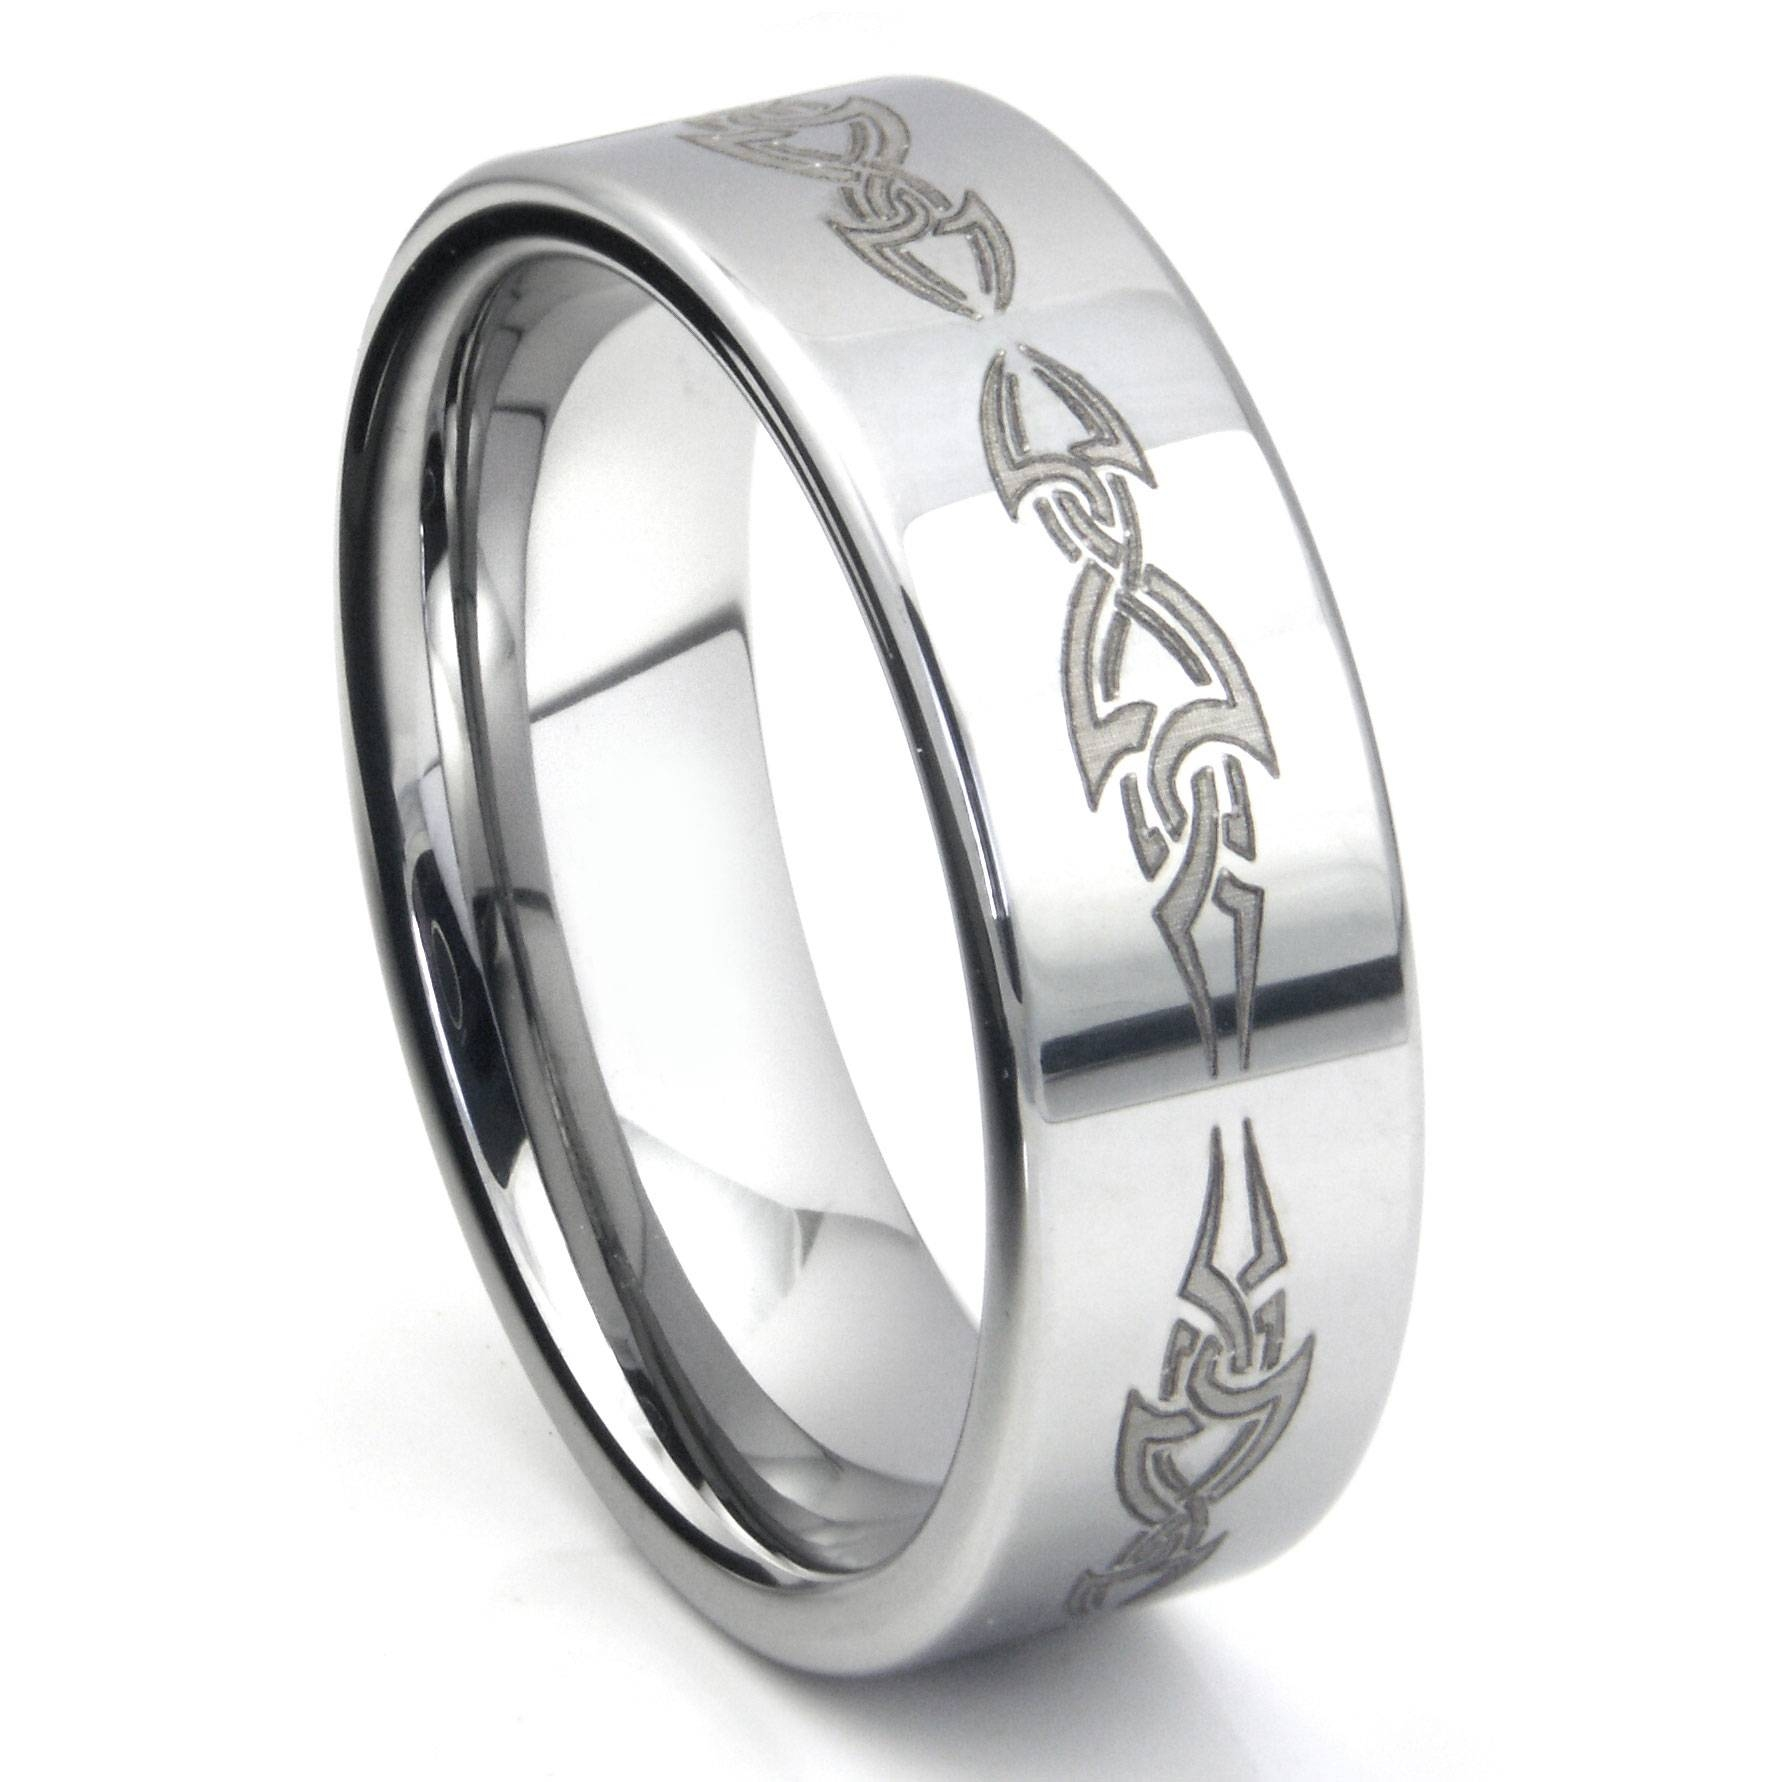 Tungsten Carbide Laser Engraved Tribal Wedding Band Ring With Regard To Tribal Engagement Rings (View 11 of 15)